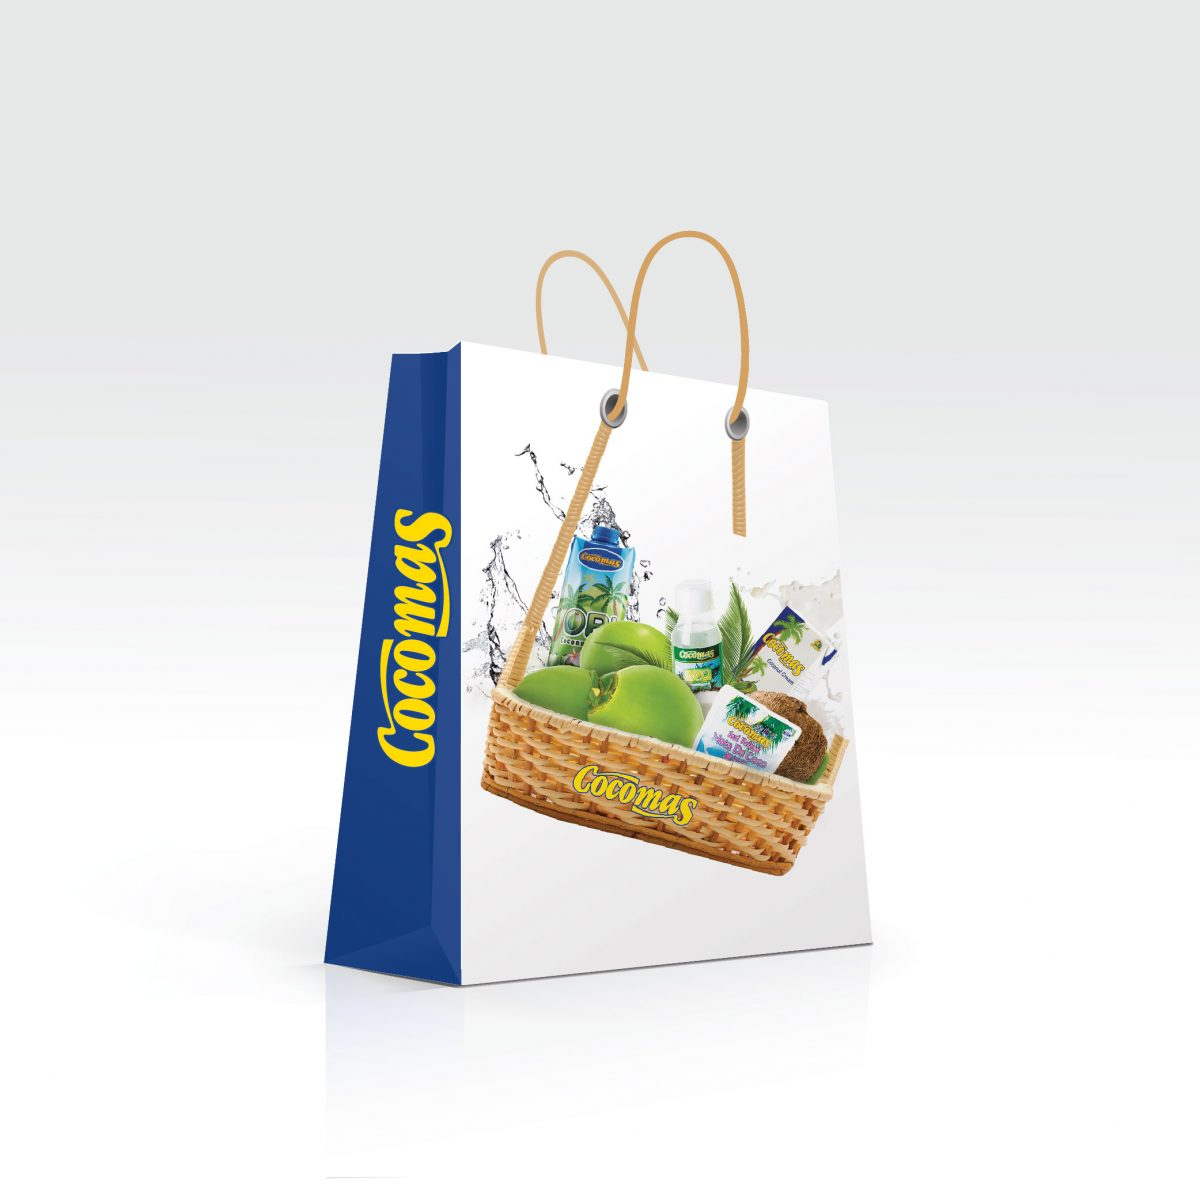 Product Packaging Design (Paper Bag)